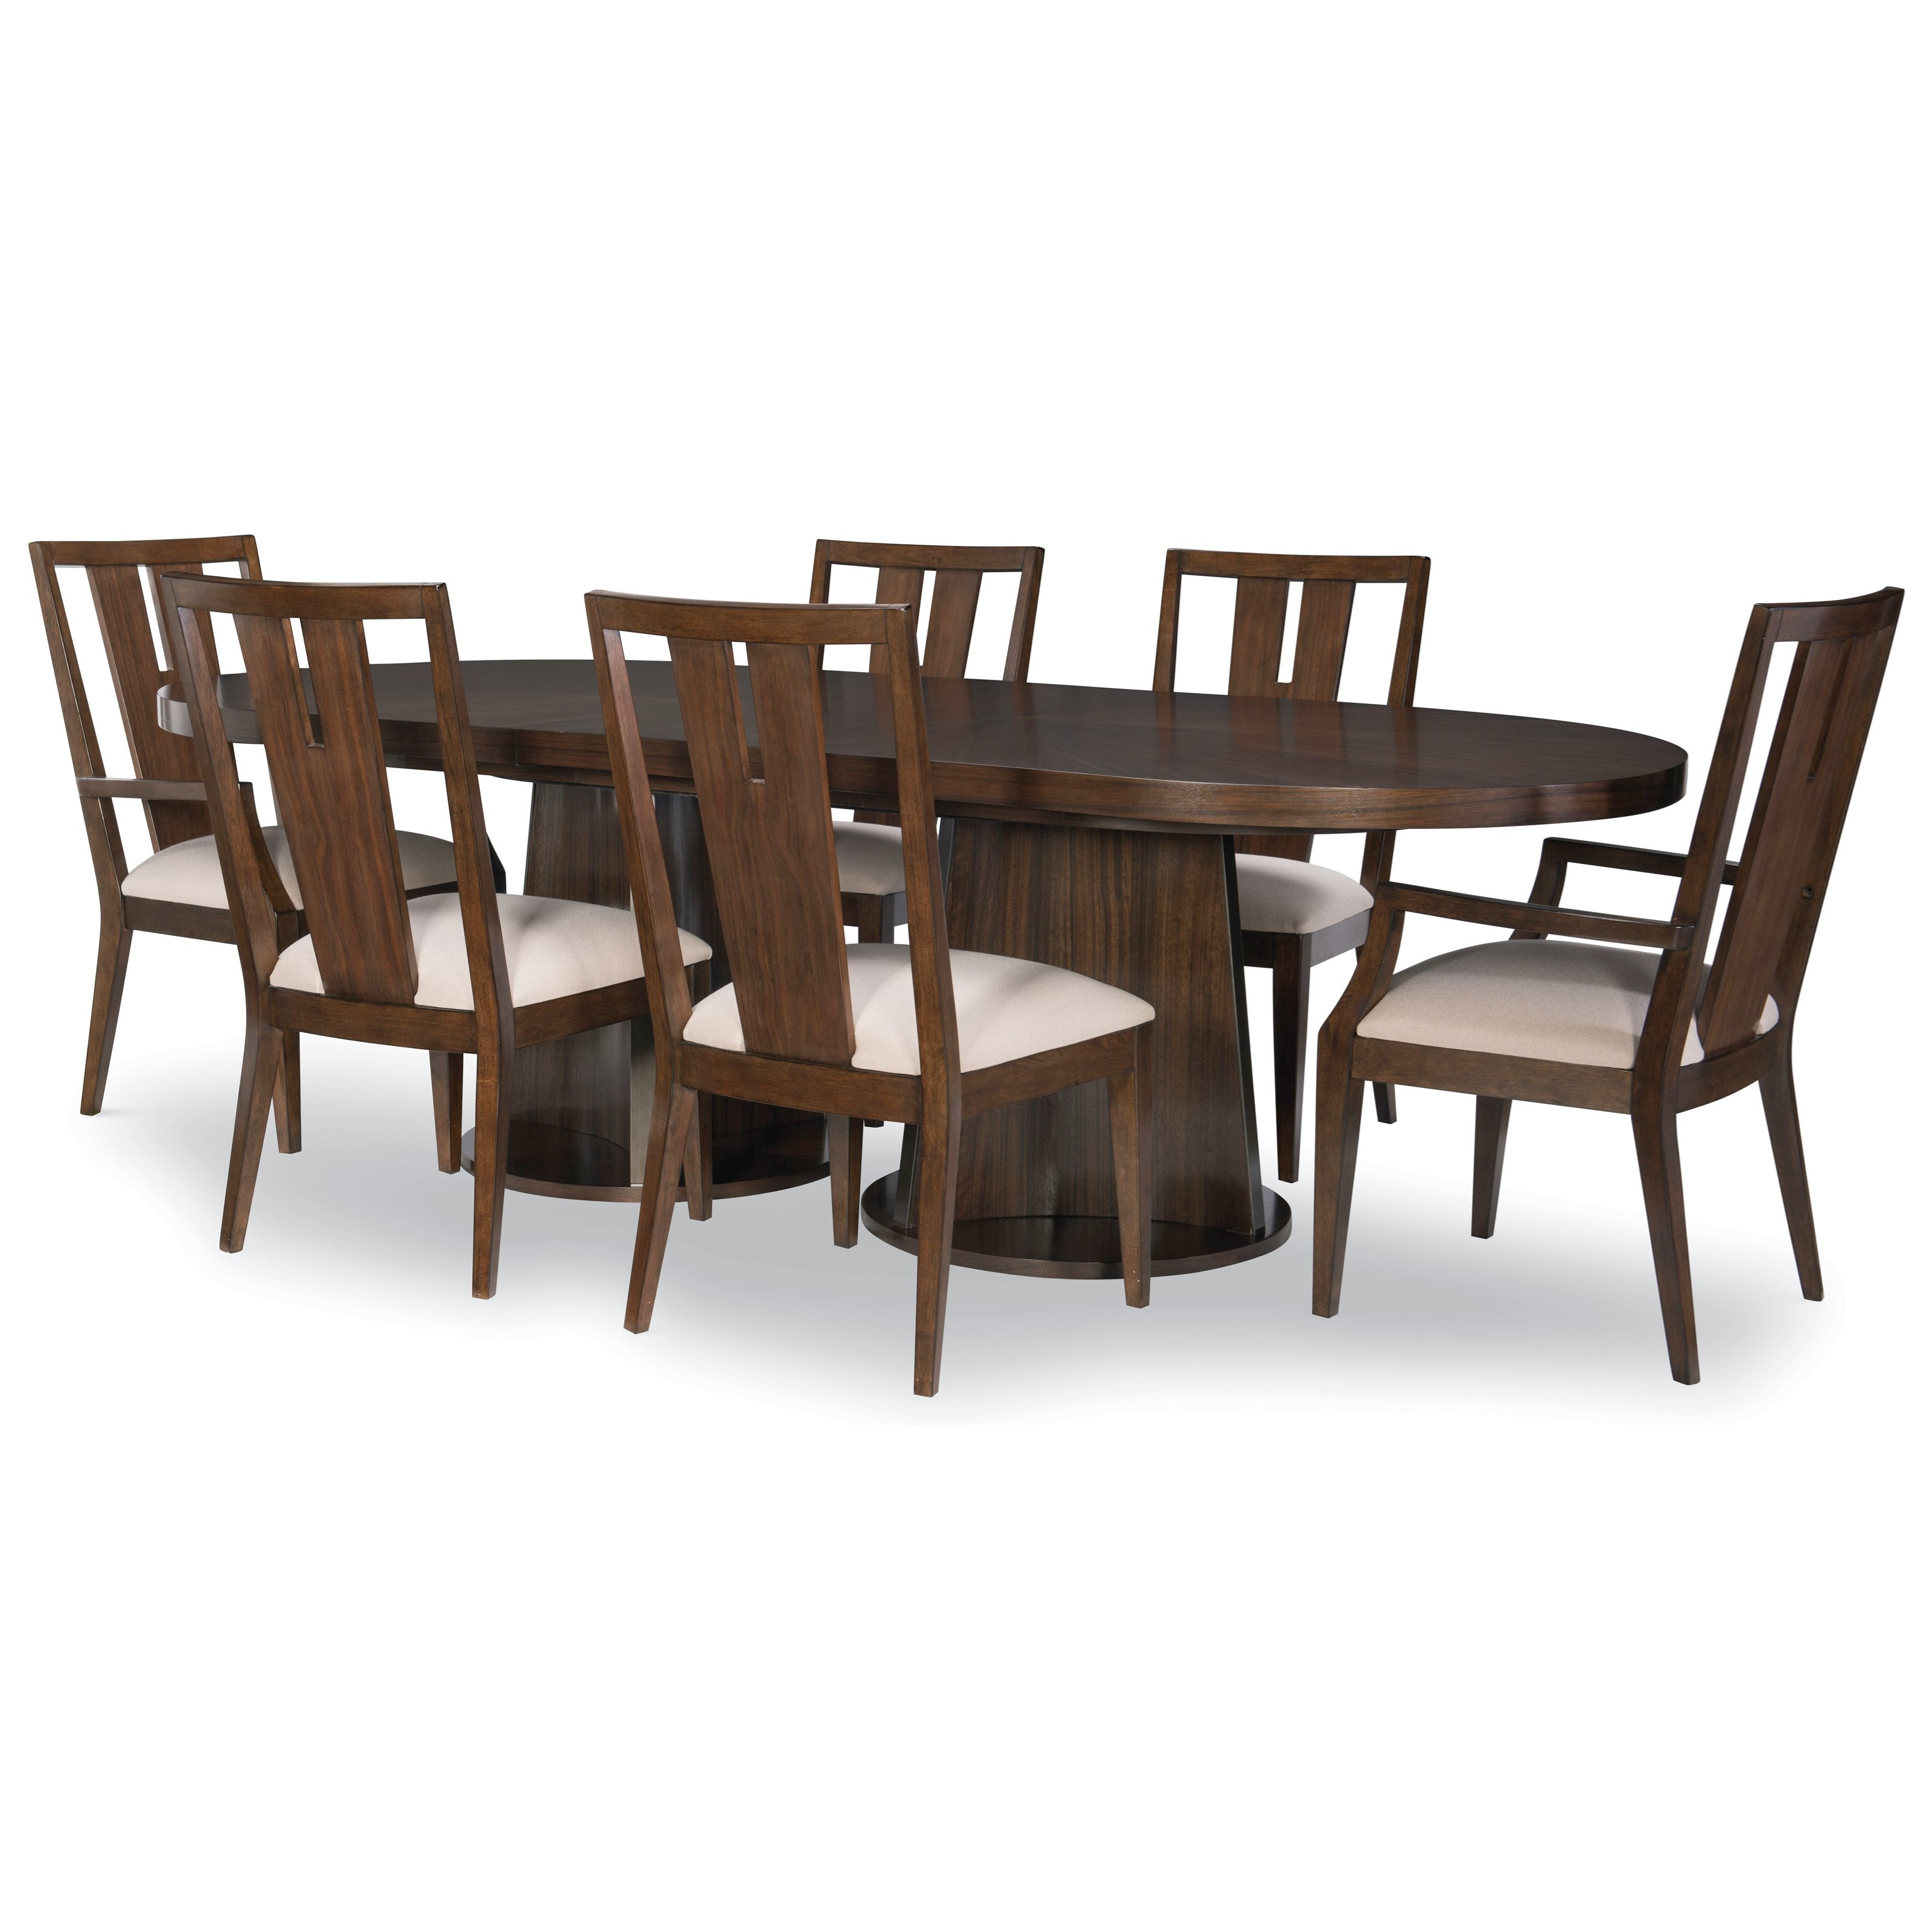 Paldao 7-Piece Table and Chair Set by Legacy Classic at EFO Furniture Outlet